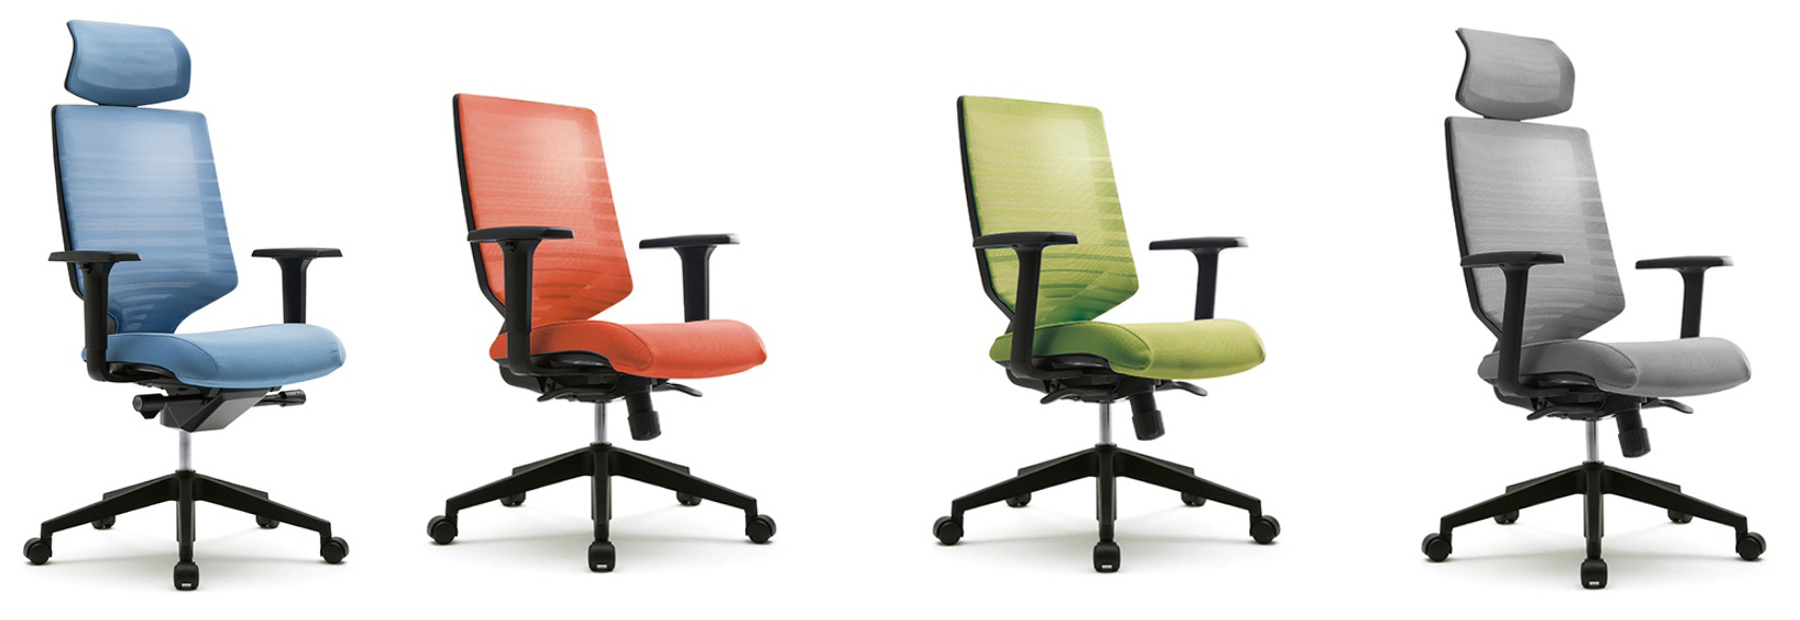 Office Chairs Office Furniture Conference Table Cubicle Work Station New and Used Laminate Desk Work space floor plan Chairs Los Angeles California